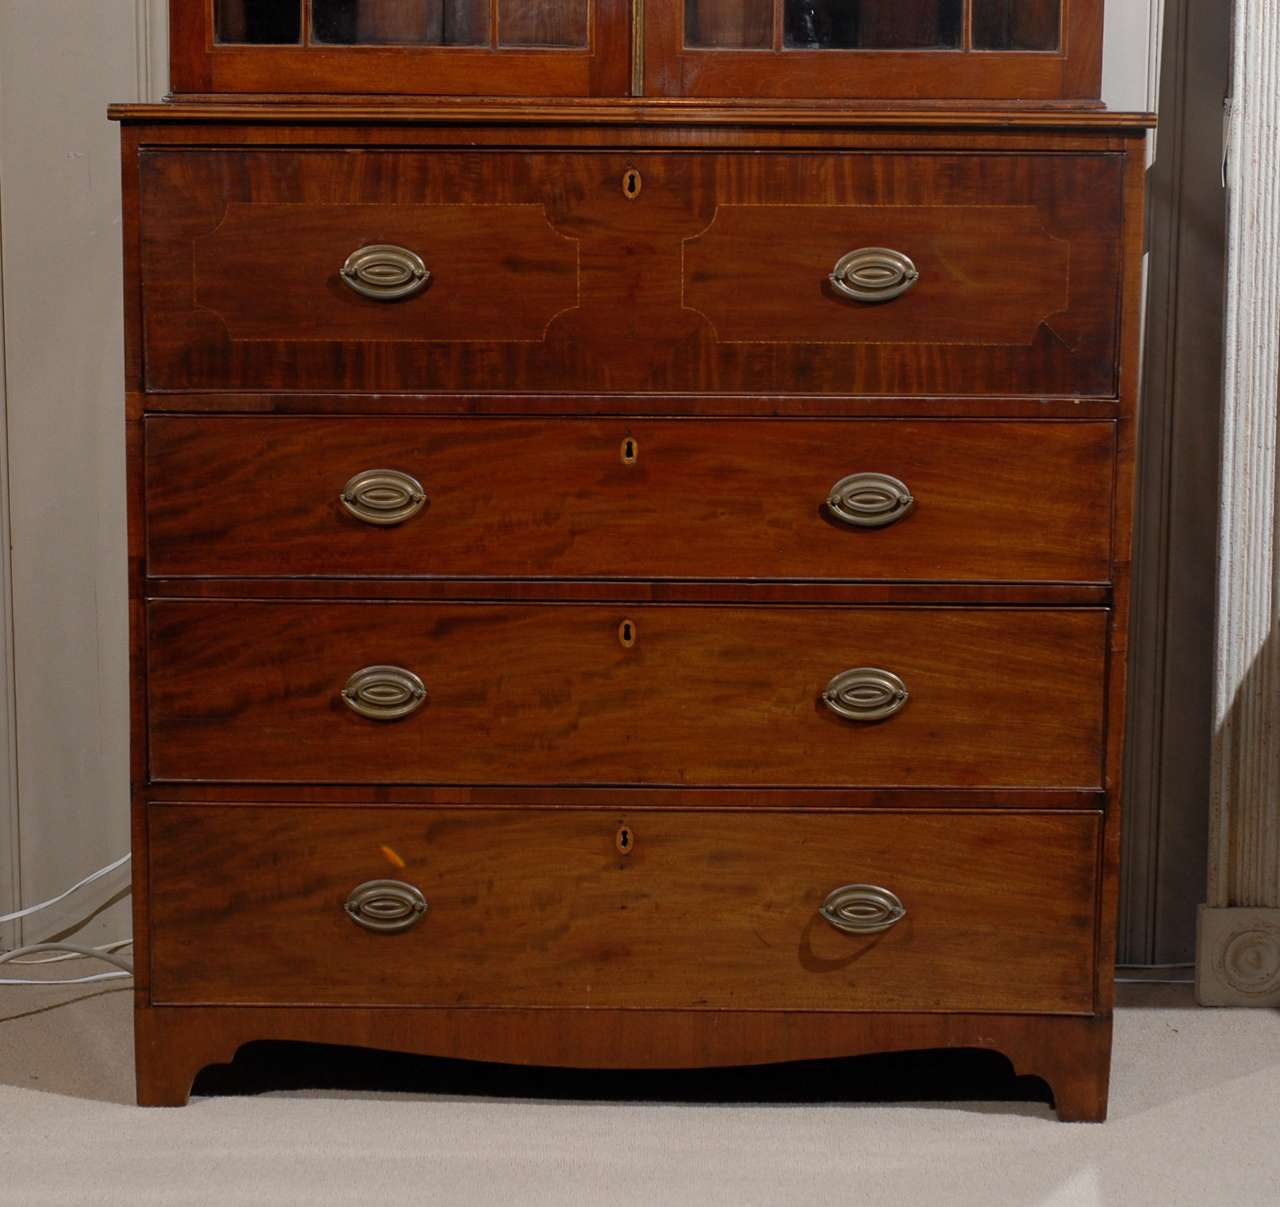 Bureau book case secr taire for sale at 1stdibs for Bureau secretaire